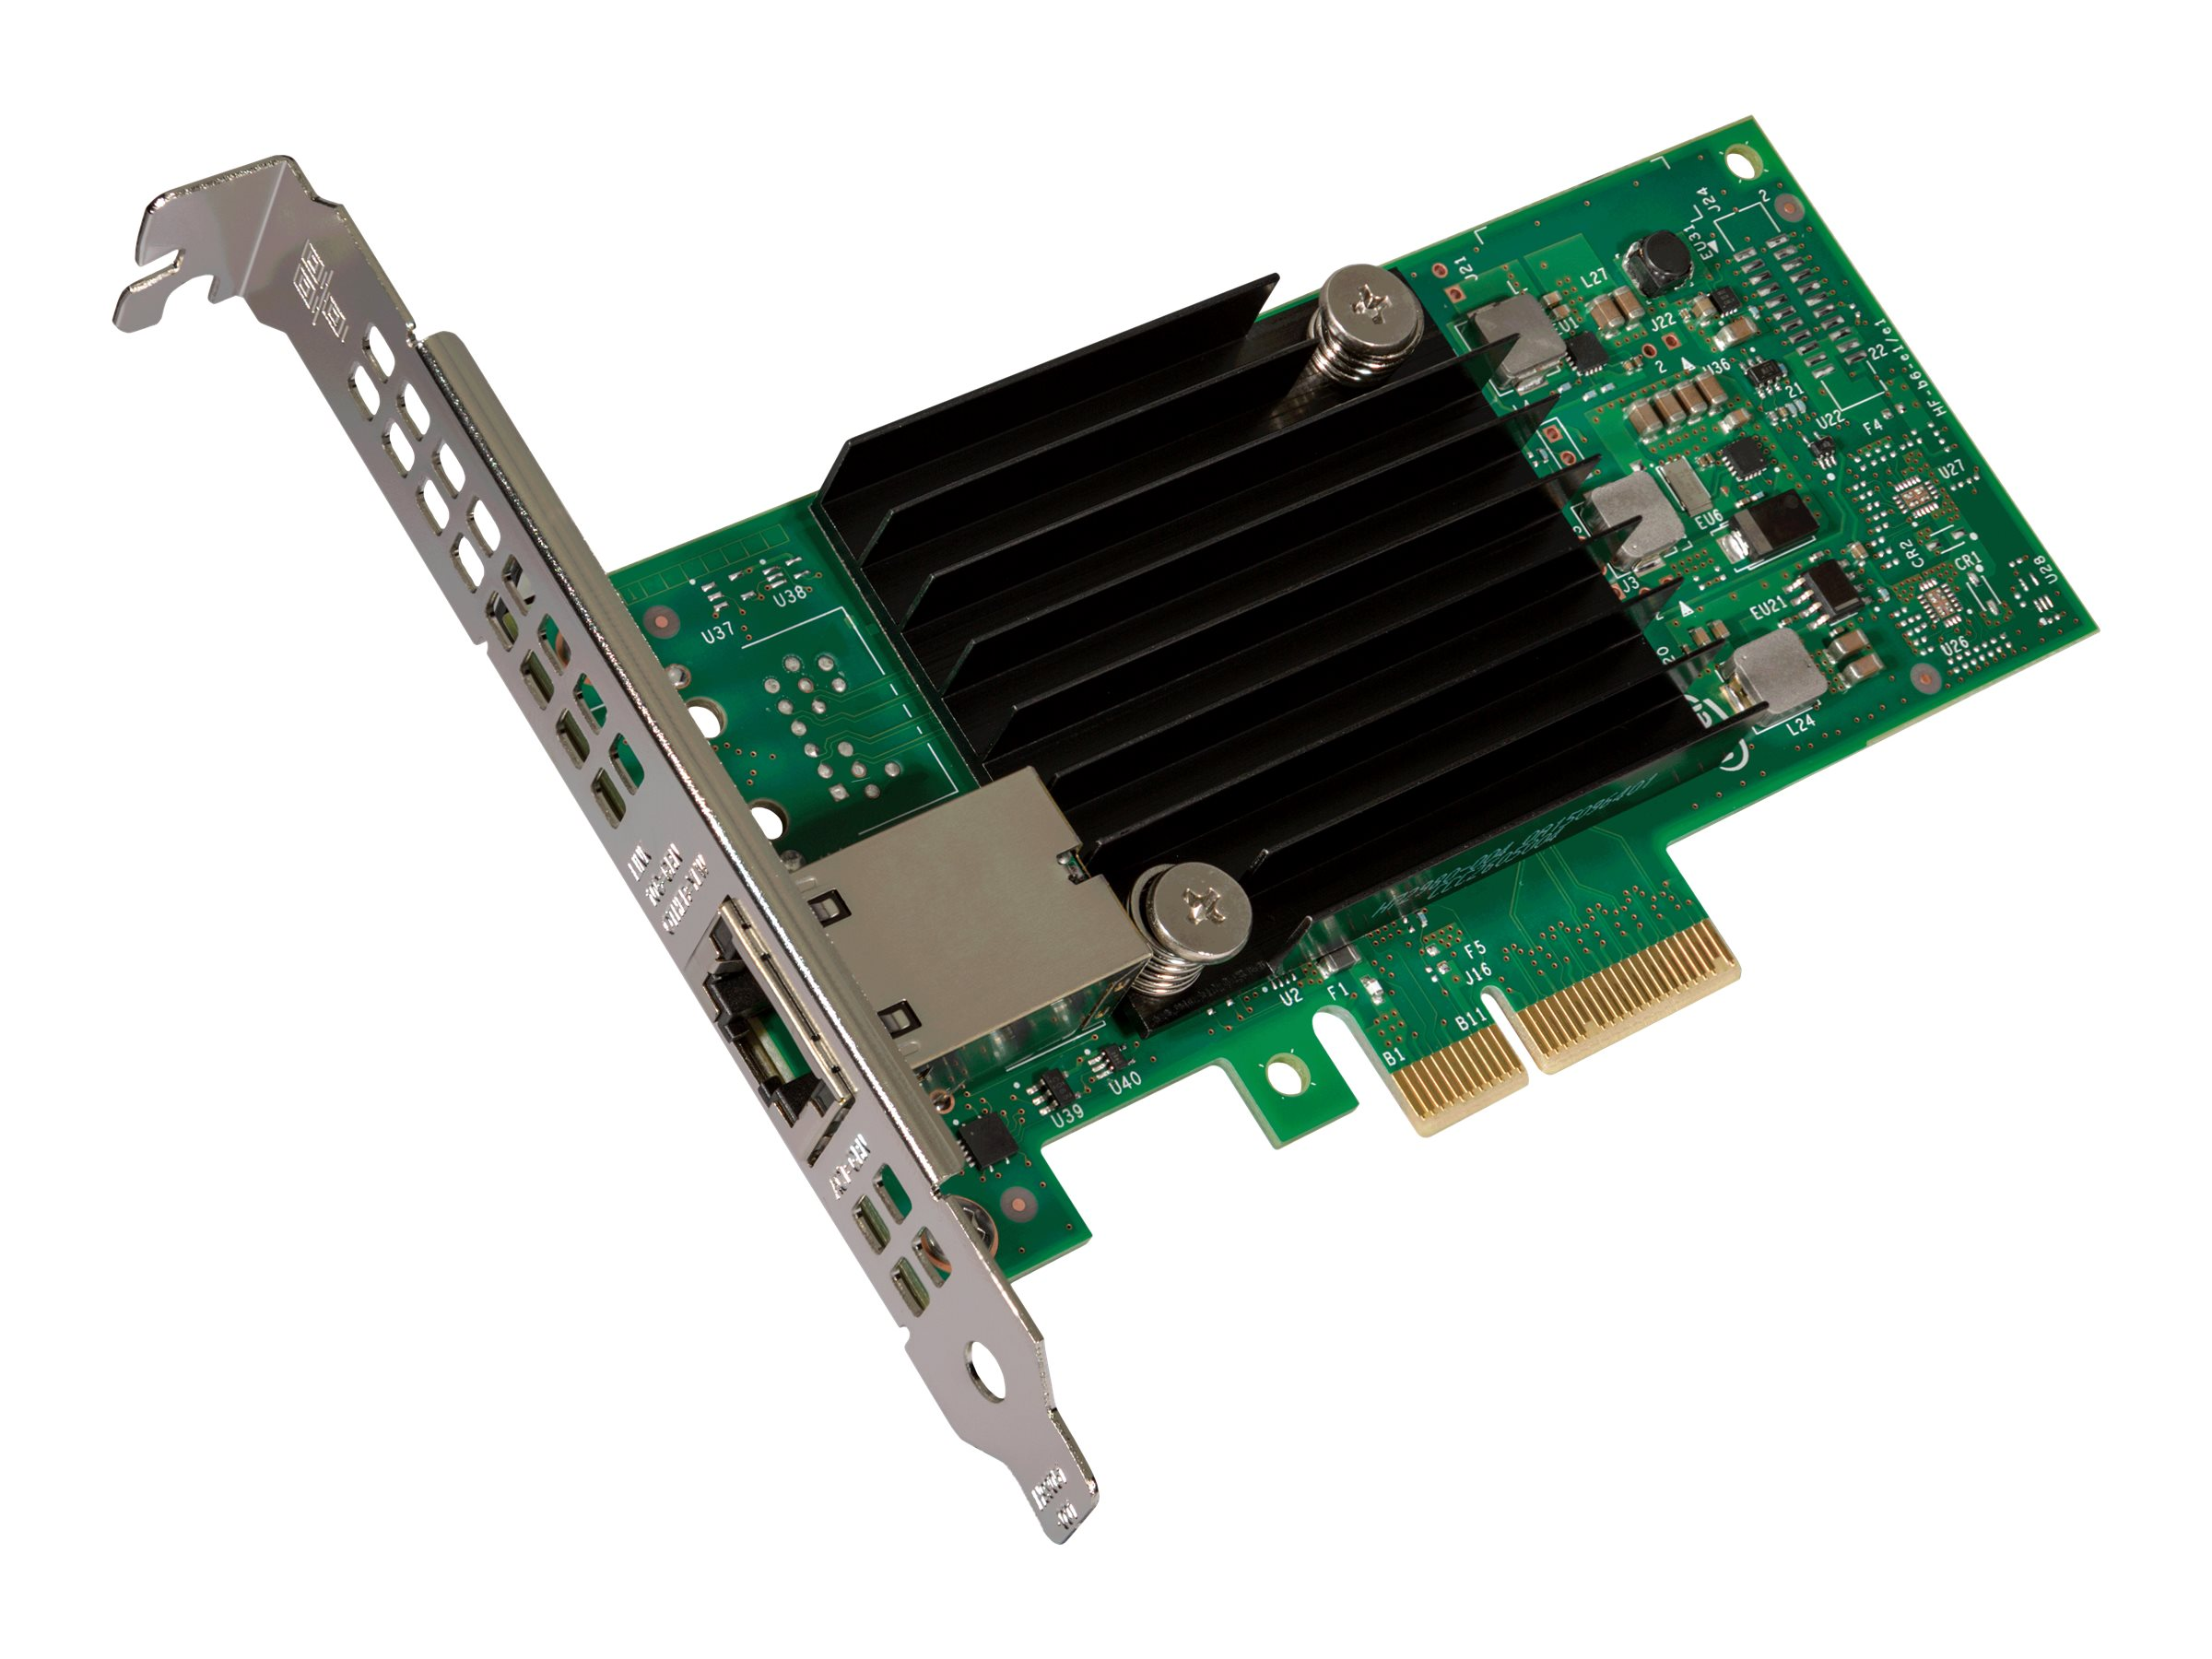 Intel Ethernet Converged Network Adapter X550-T1 - network adapter - PCIe 3.0 - 10Gb Ethernet x 1